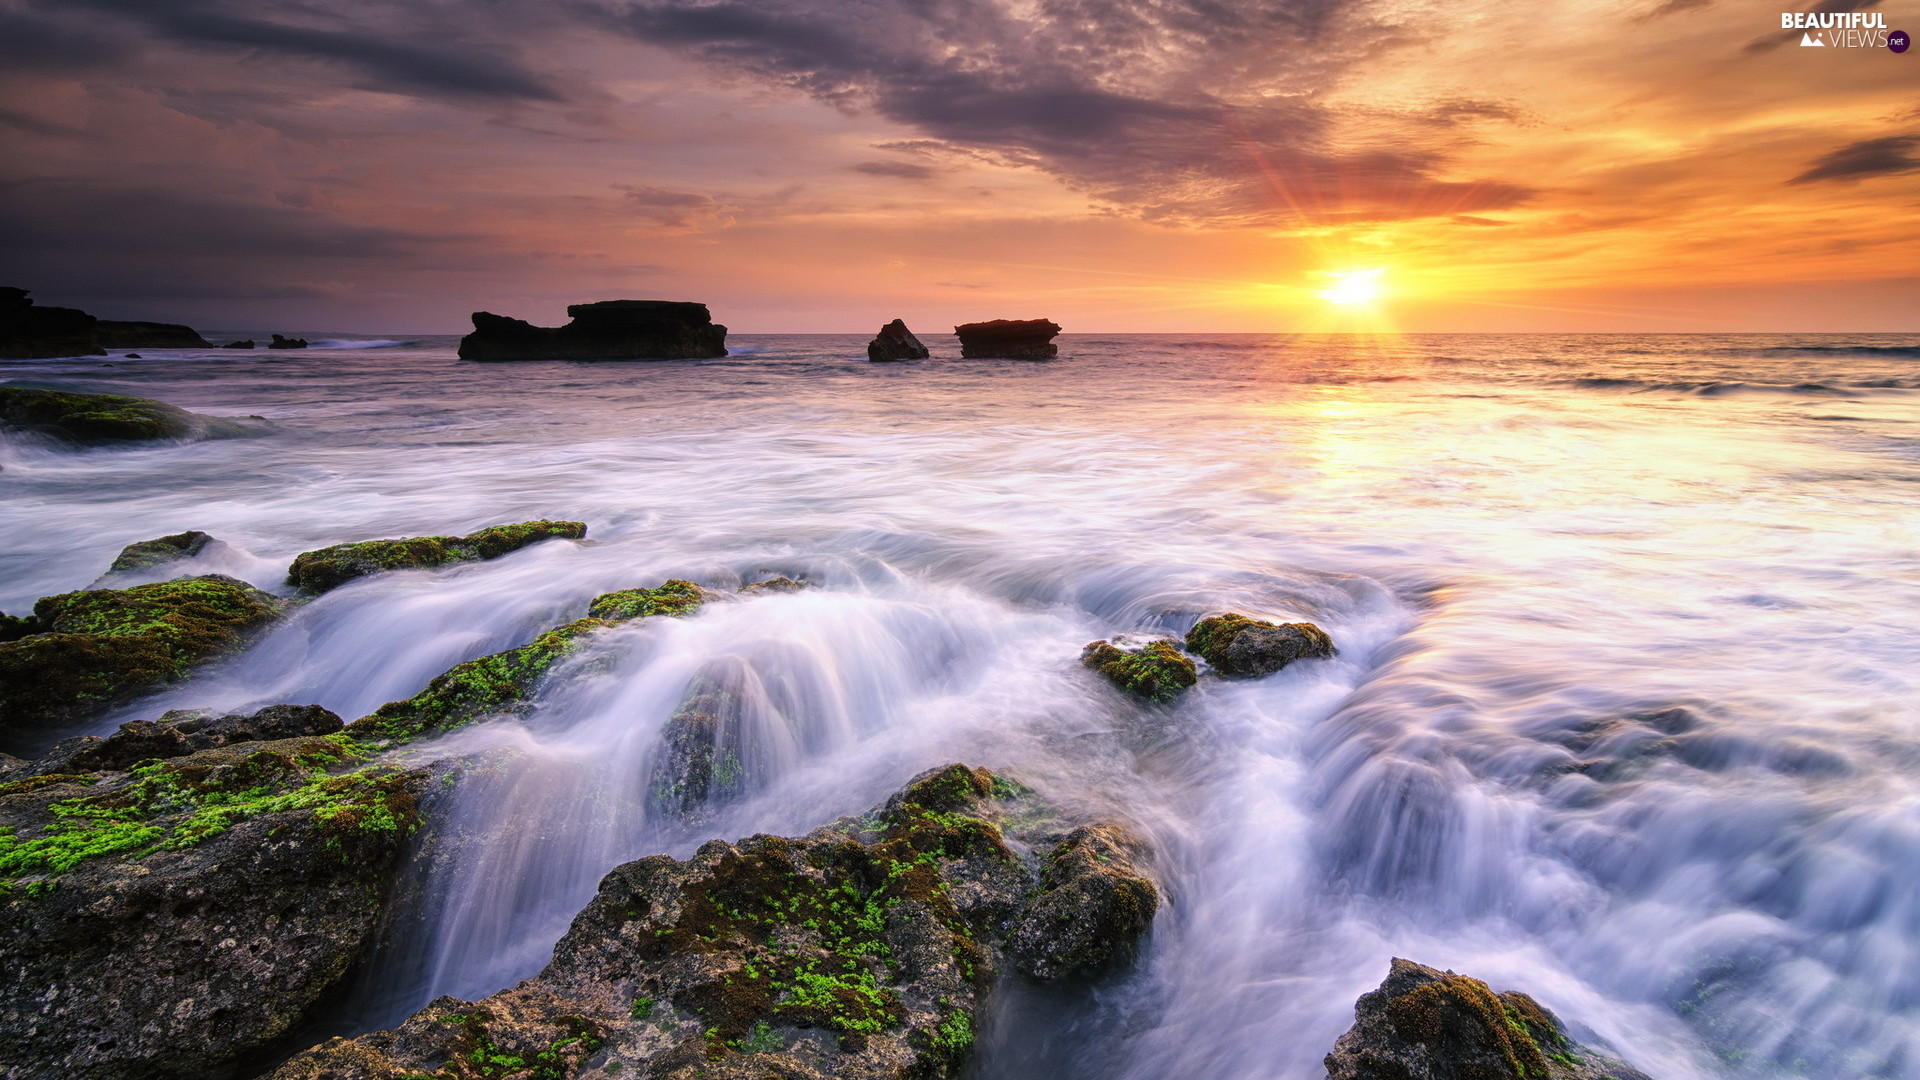 sea, indonesia, Great Sunsets, clouds, rocks, Bali Island